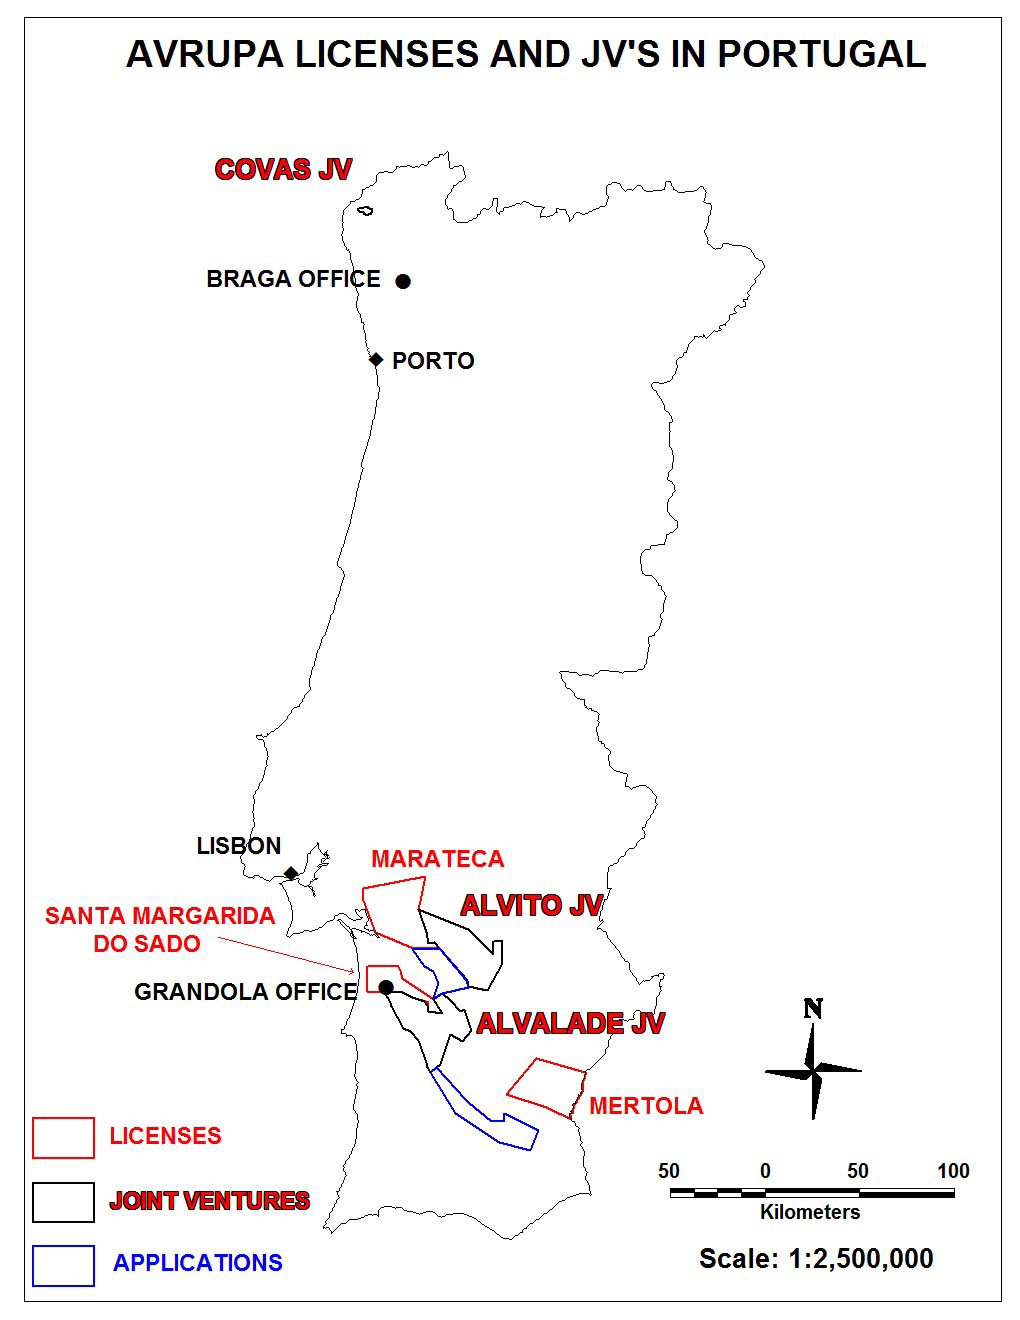 Avrupa-Minerals-Licenses-Portugal